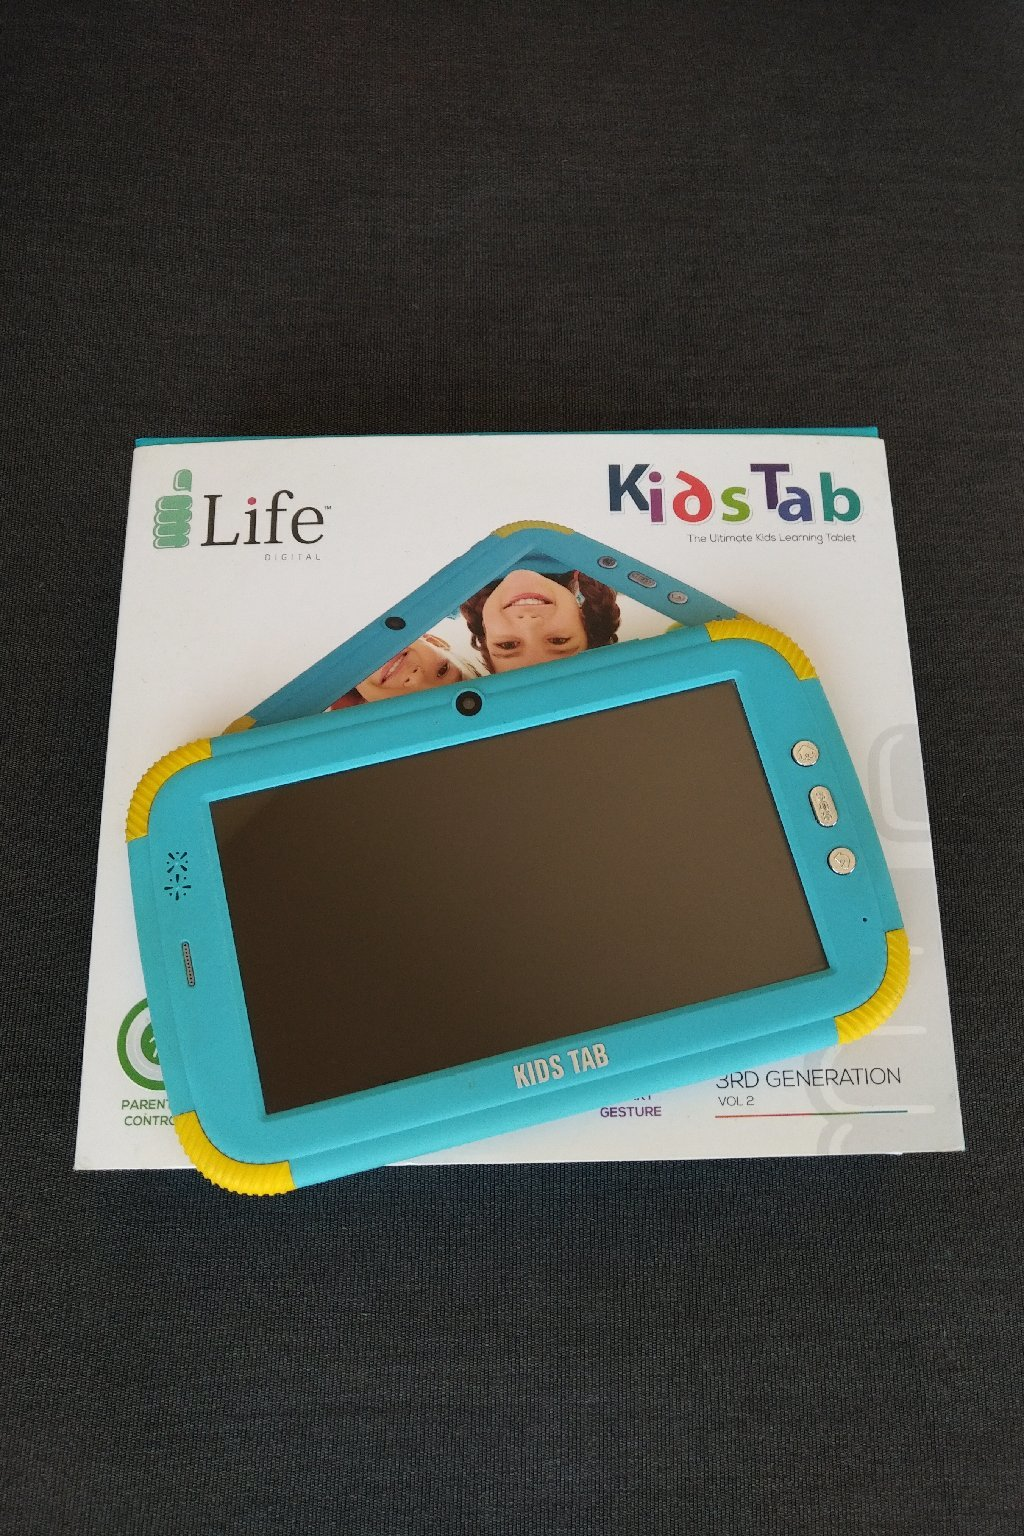 I Life Kids Tablet 3rd Generation. Used